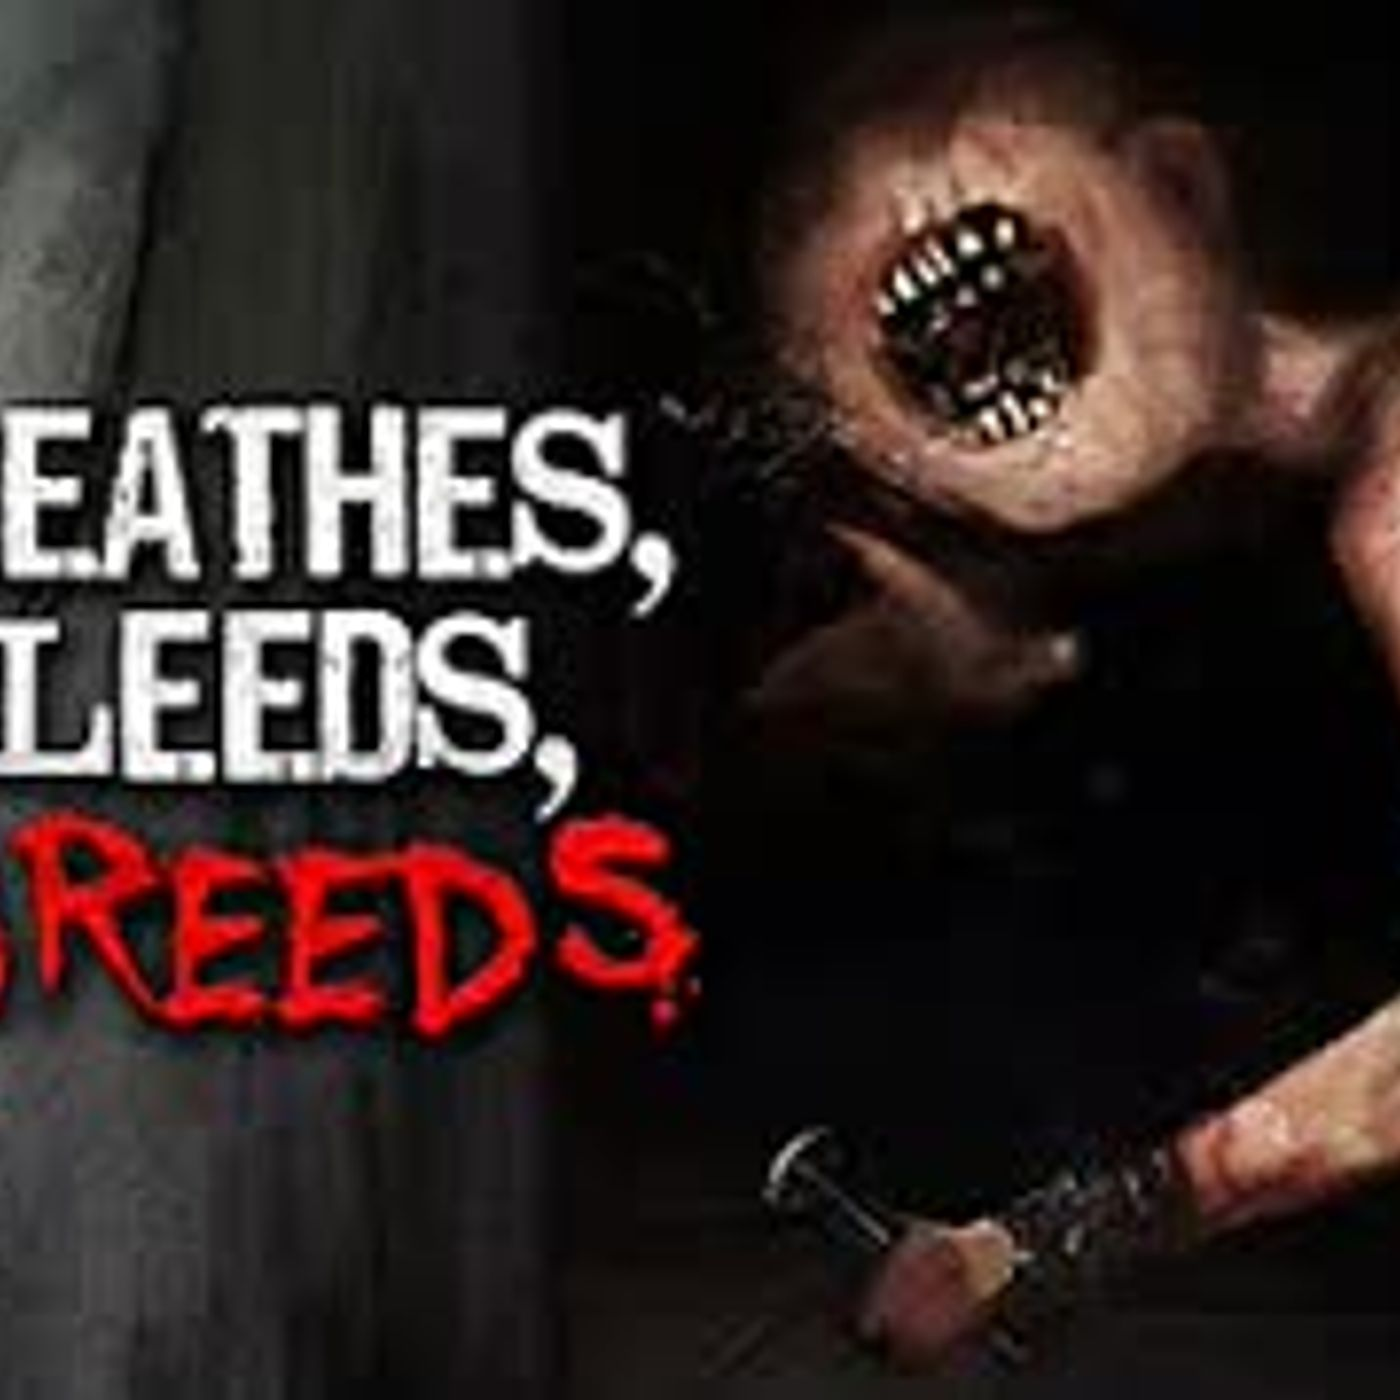 """It Breathes, It Bleeds, It Breeds"" Creepypasta"